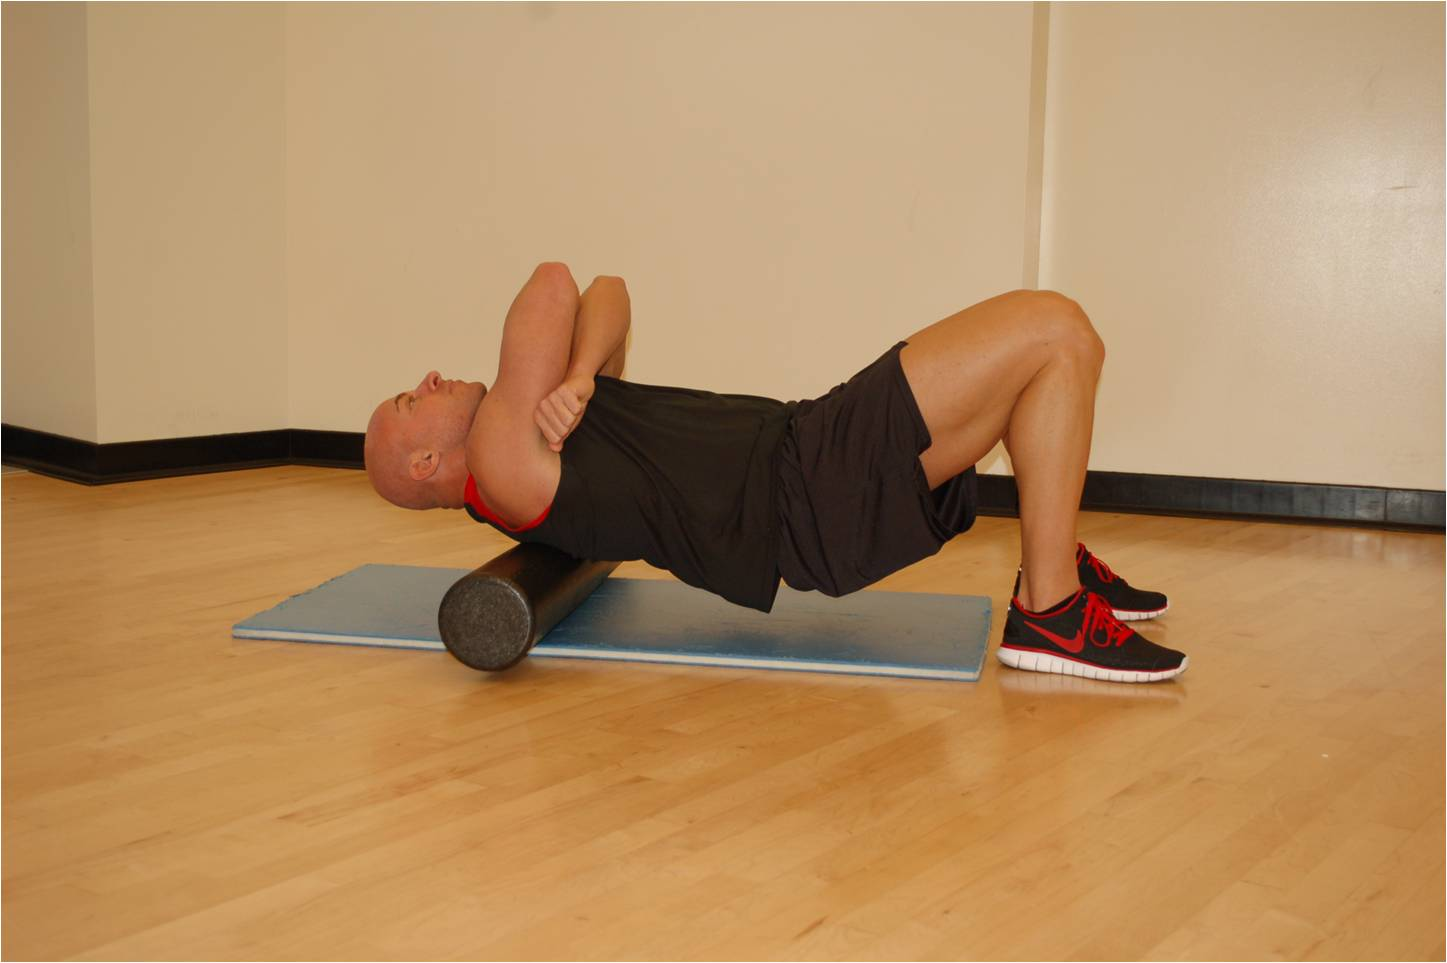 Fit day, foam roller for upper back pain relief